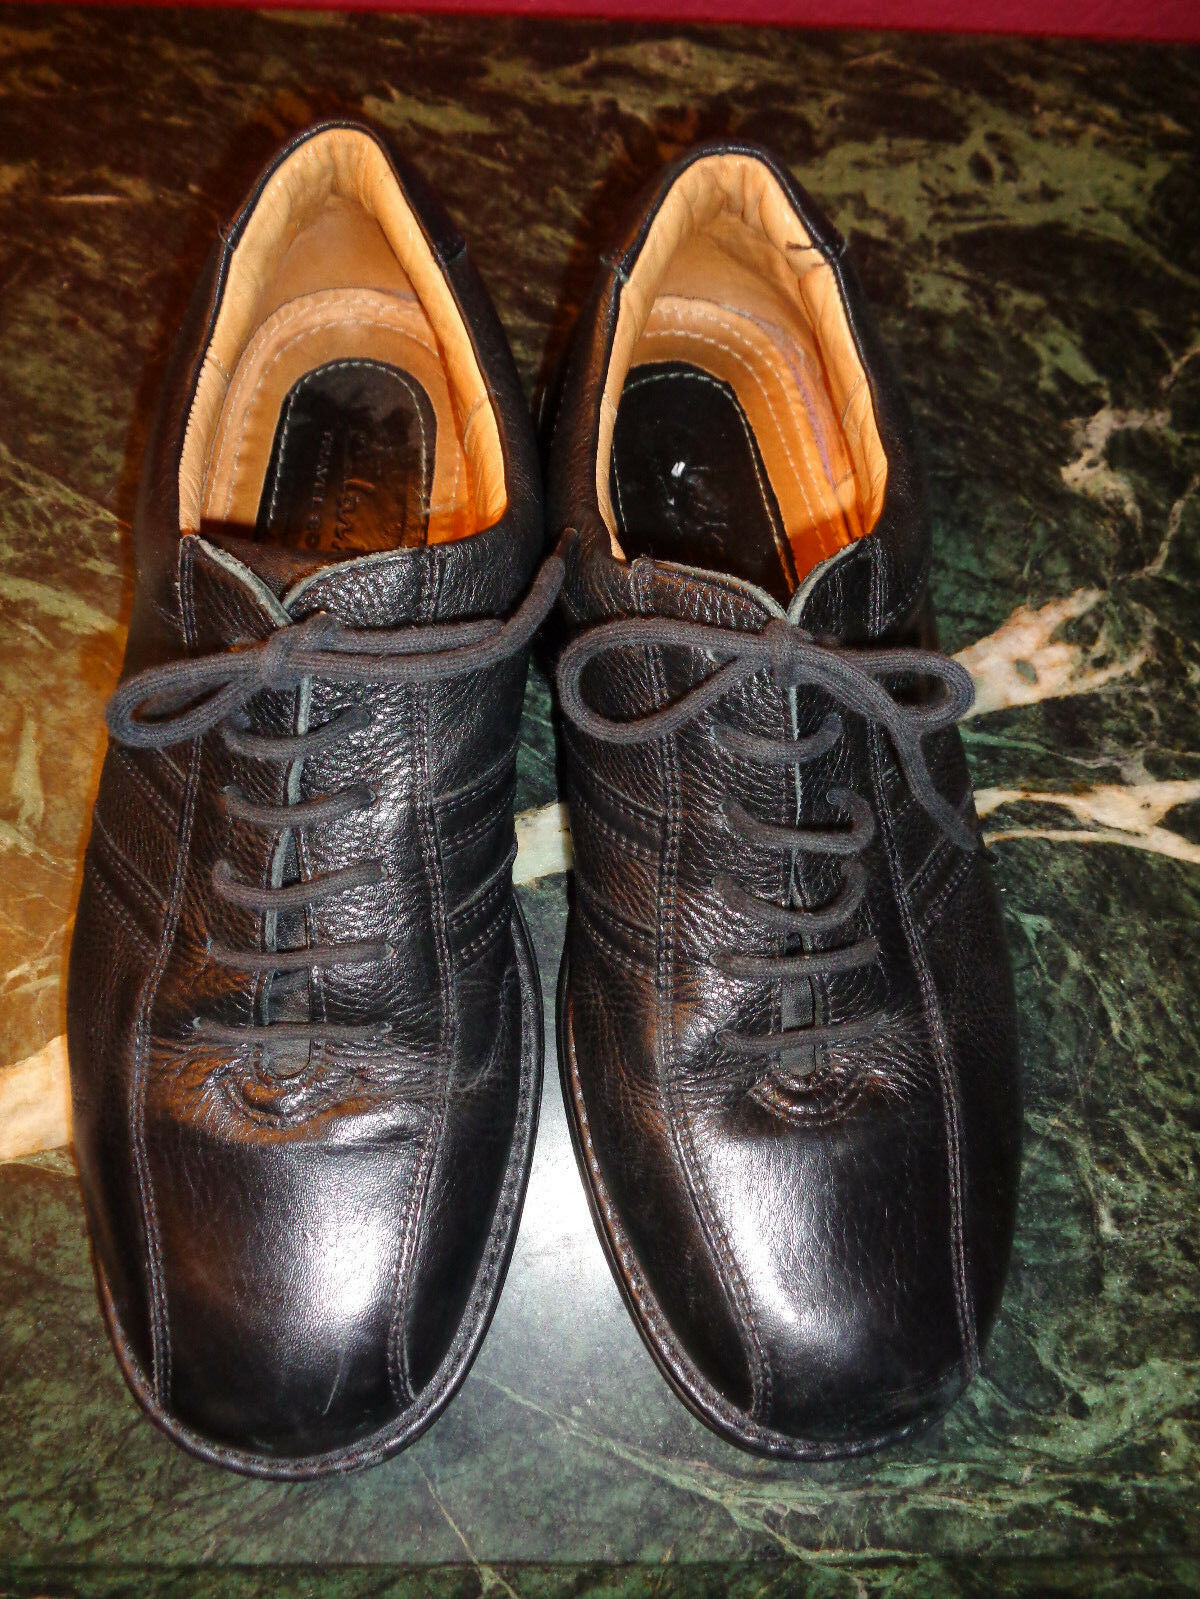 CLARKS TRAVEL SOFT pebble black leather thick oxfords 10M Brazil excellent cond.